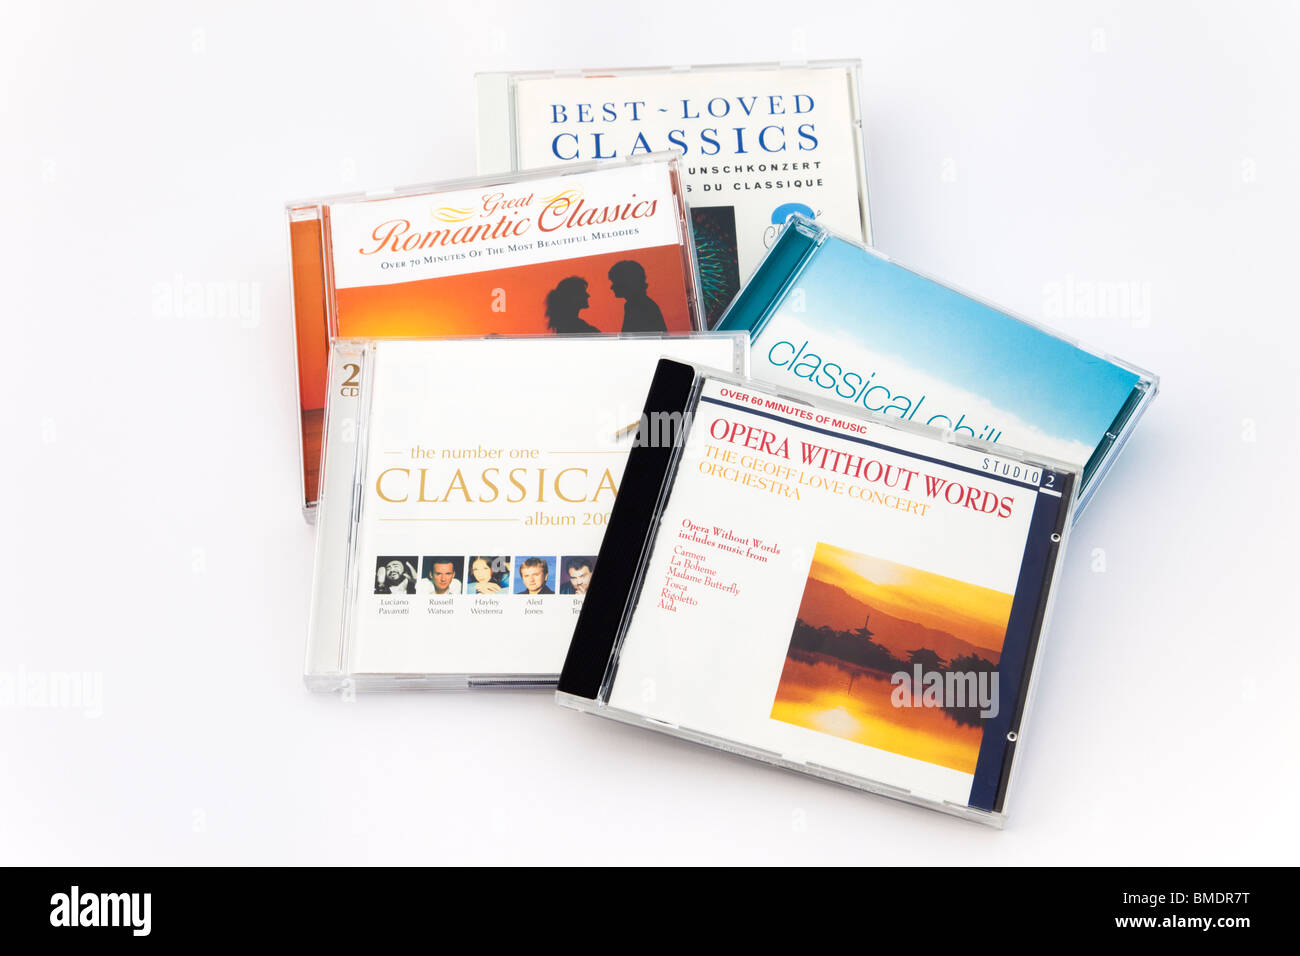 Music Cds Stock Photos & Music Cds Stock Images - Alamy